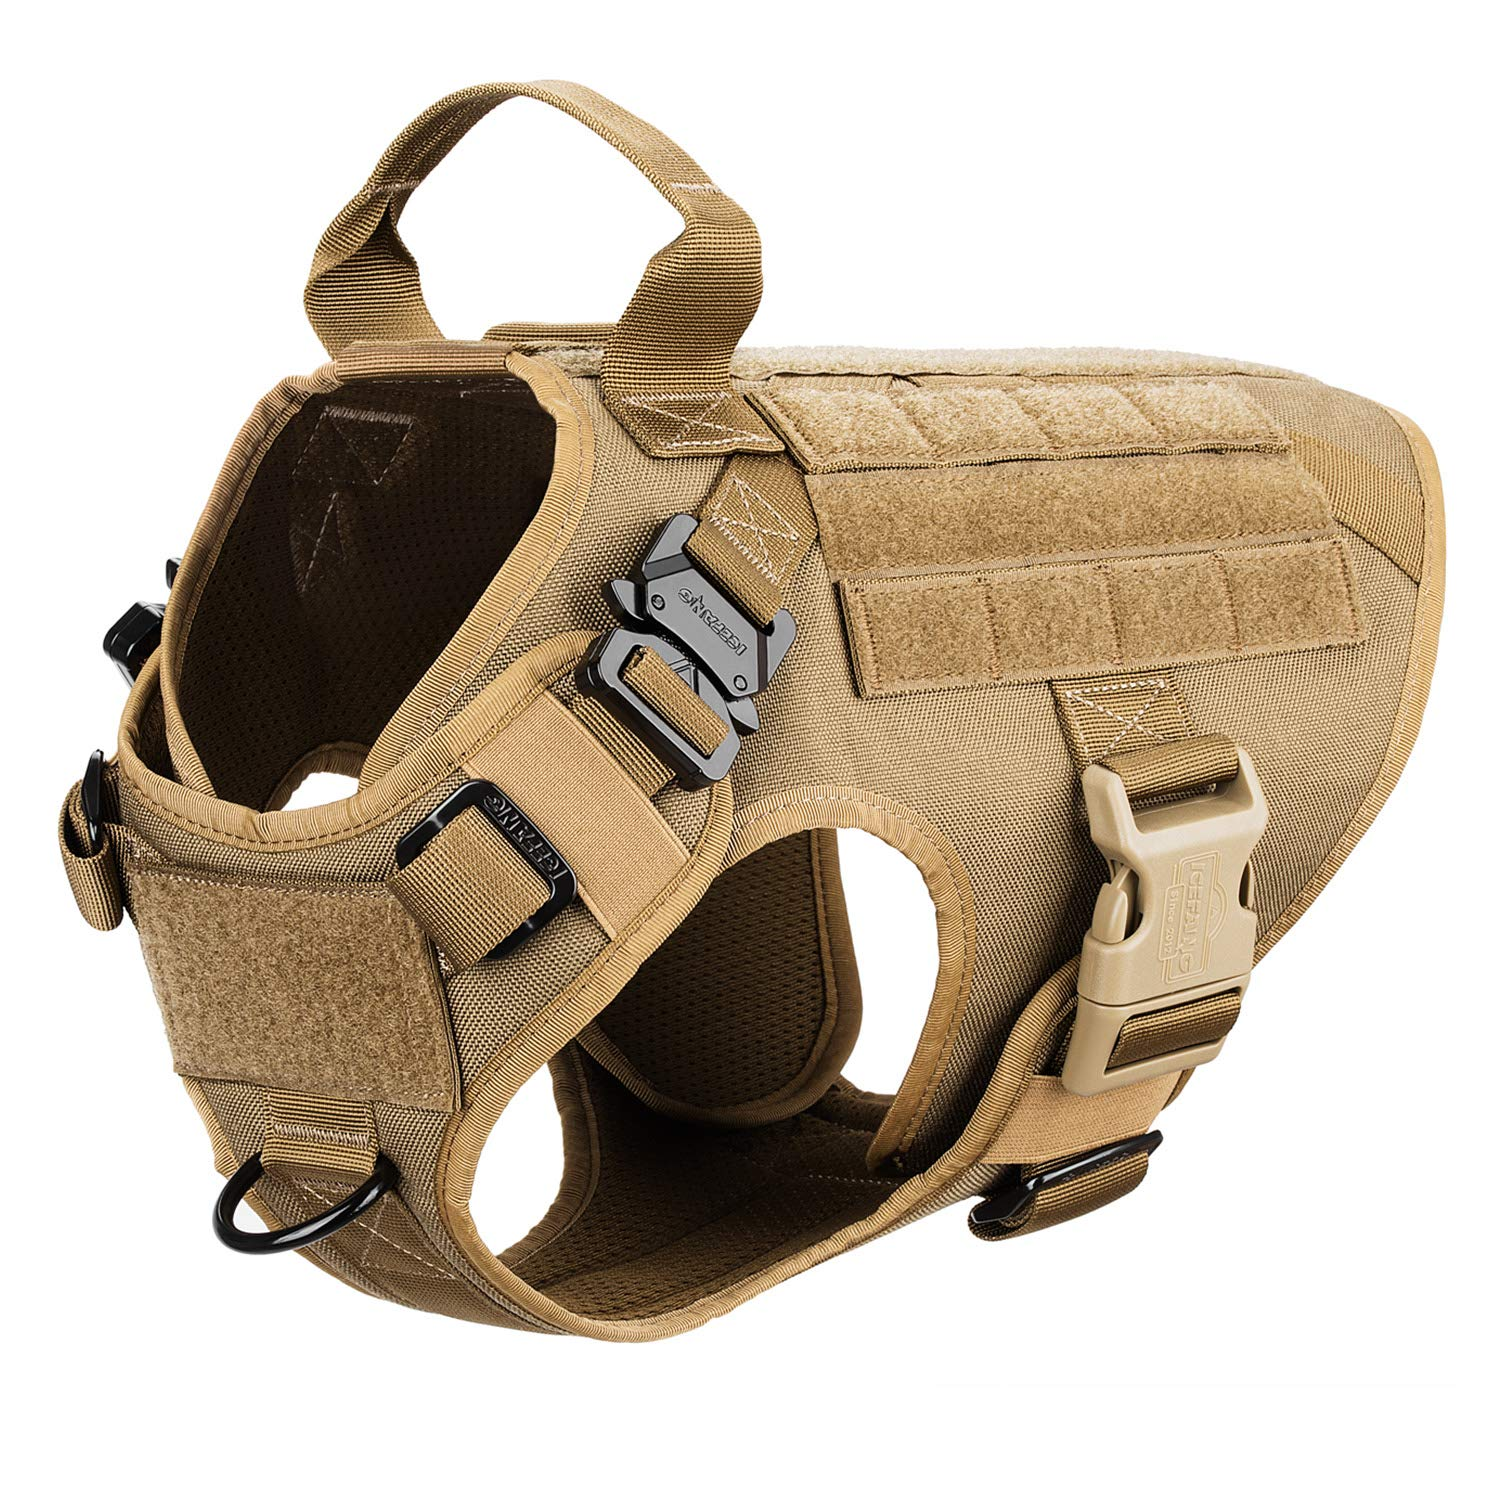 ICEFANG Dog Harness Medium Breed,Tactical Molle Dog Vest,No Pulling Front Clip, Hook and Loop Panel for Dog Patch,Metal Buckle (M 25''-30'' Girth), CB-2x Metal Buckle